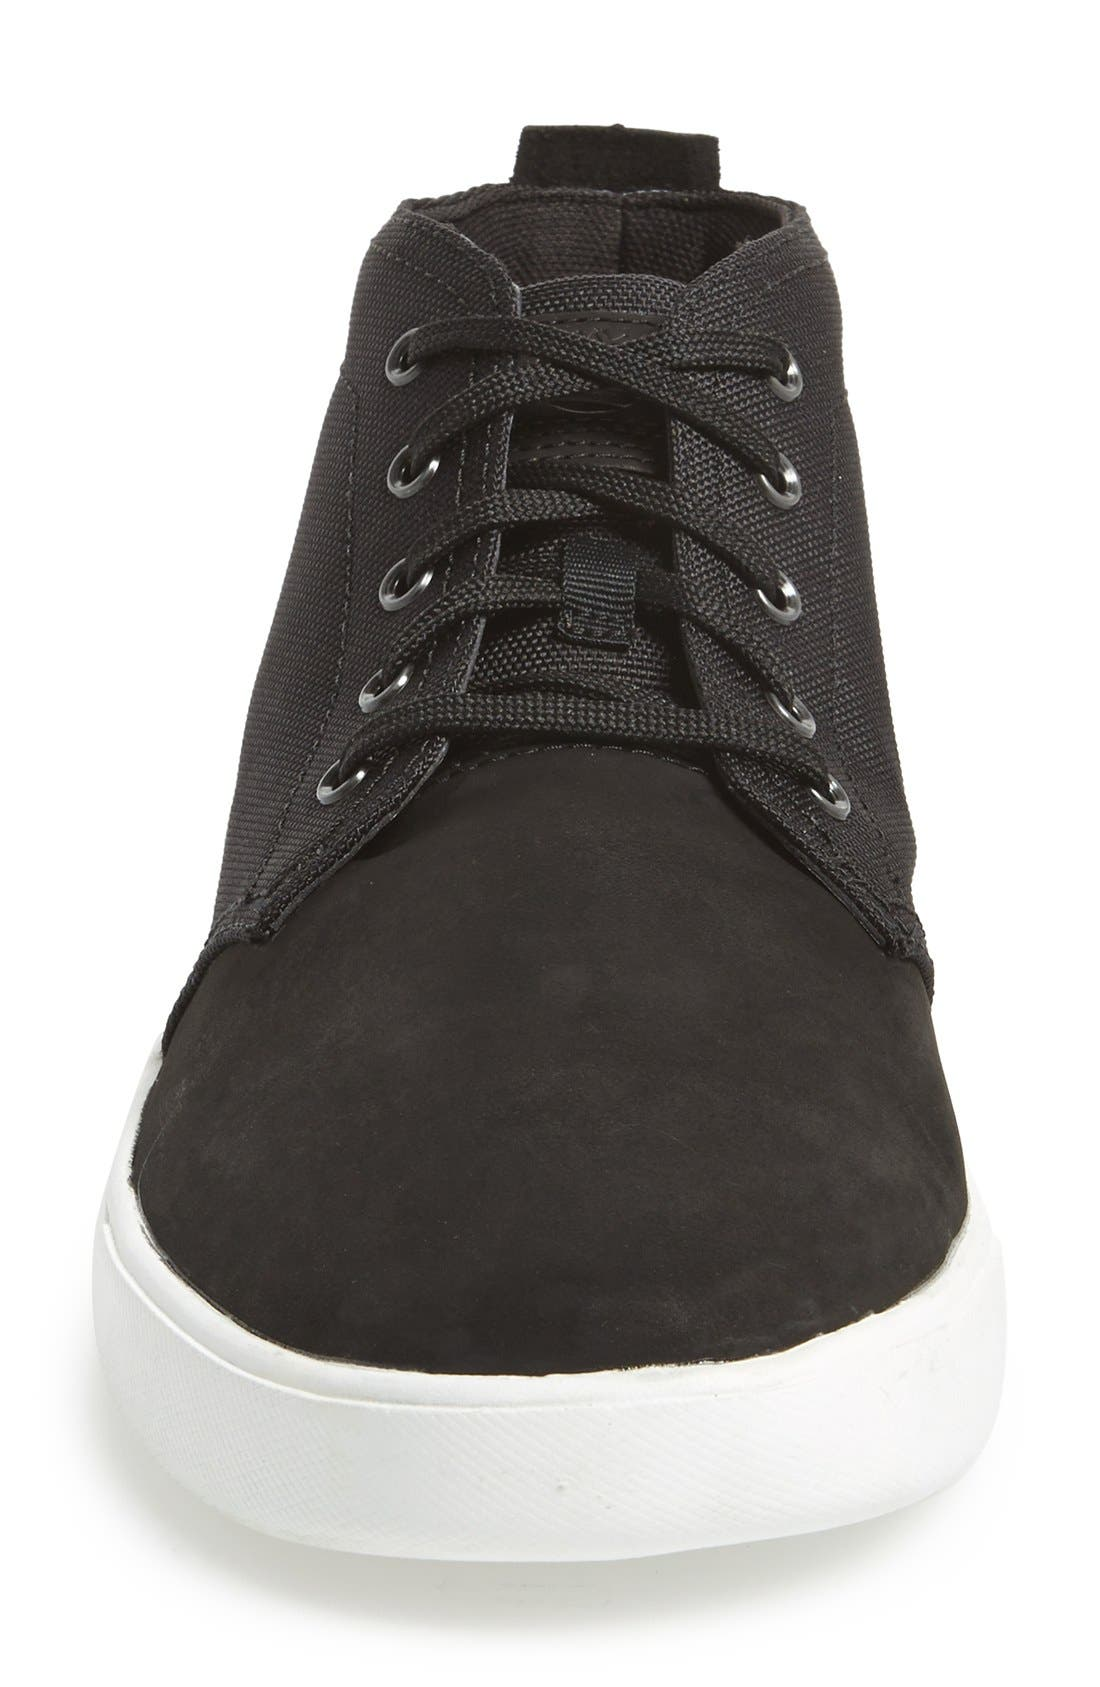 Earthkeepers<sup>™</sup> 'Groveton' Chukka Sneaker,                             Alternate thumbnail 9, color,                             001